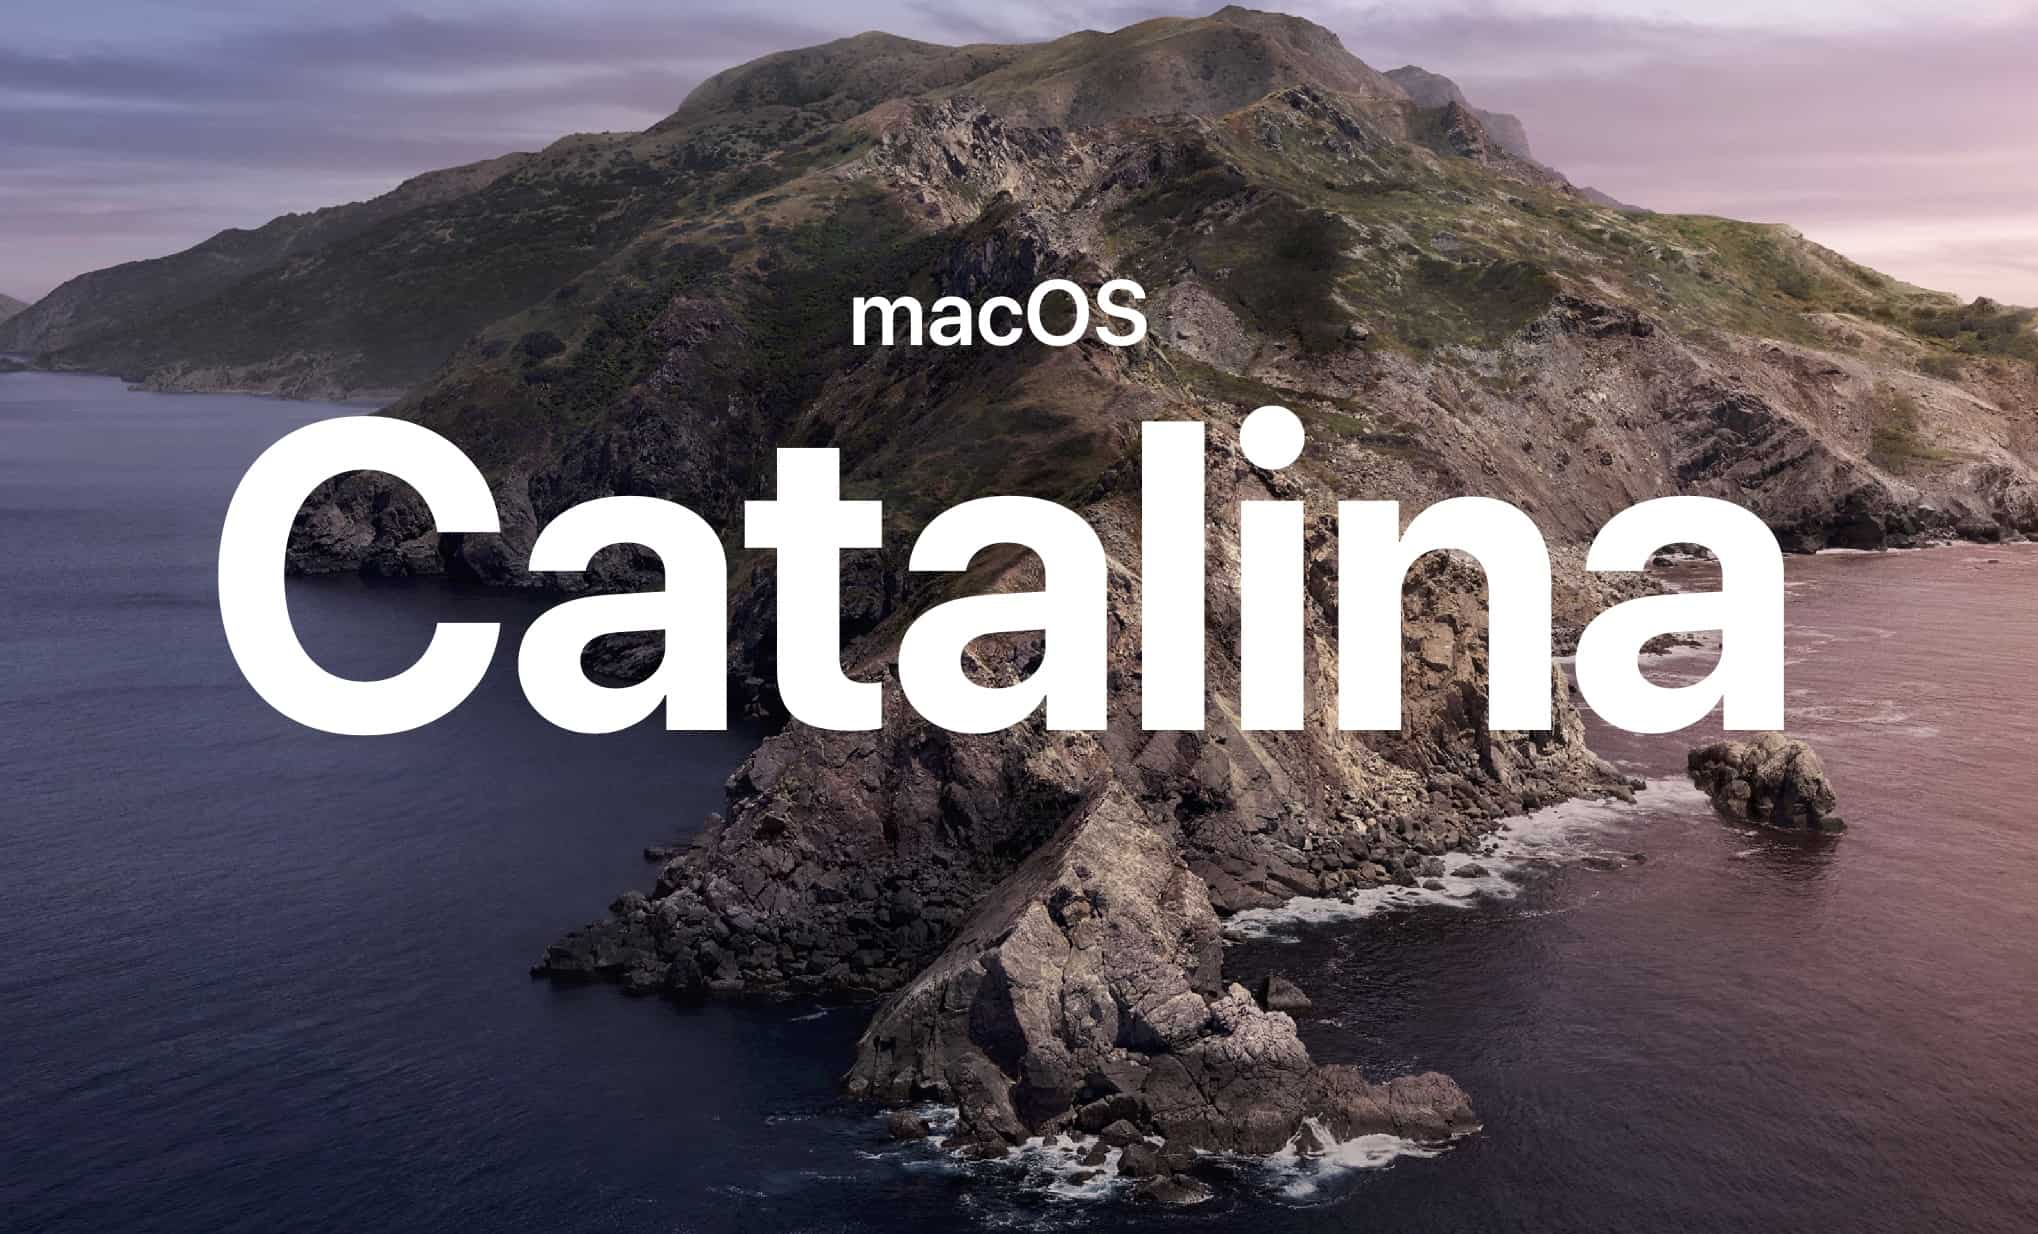 MacOS Catalina Apple Logo